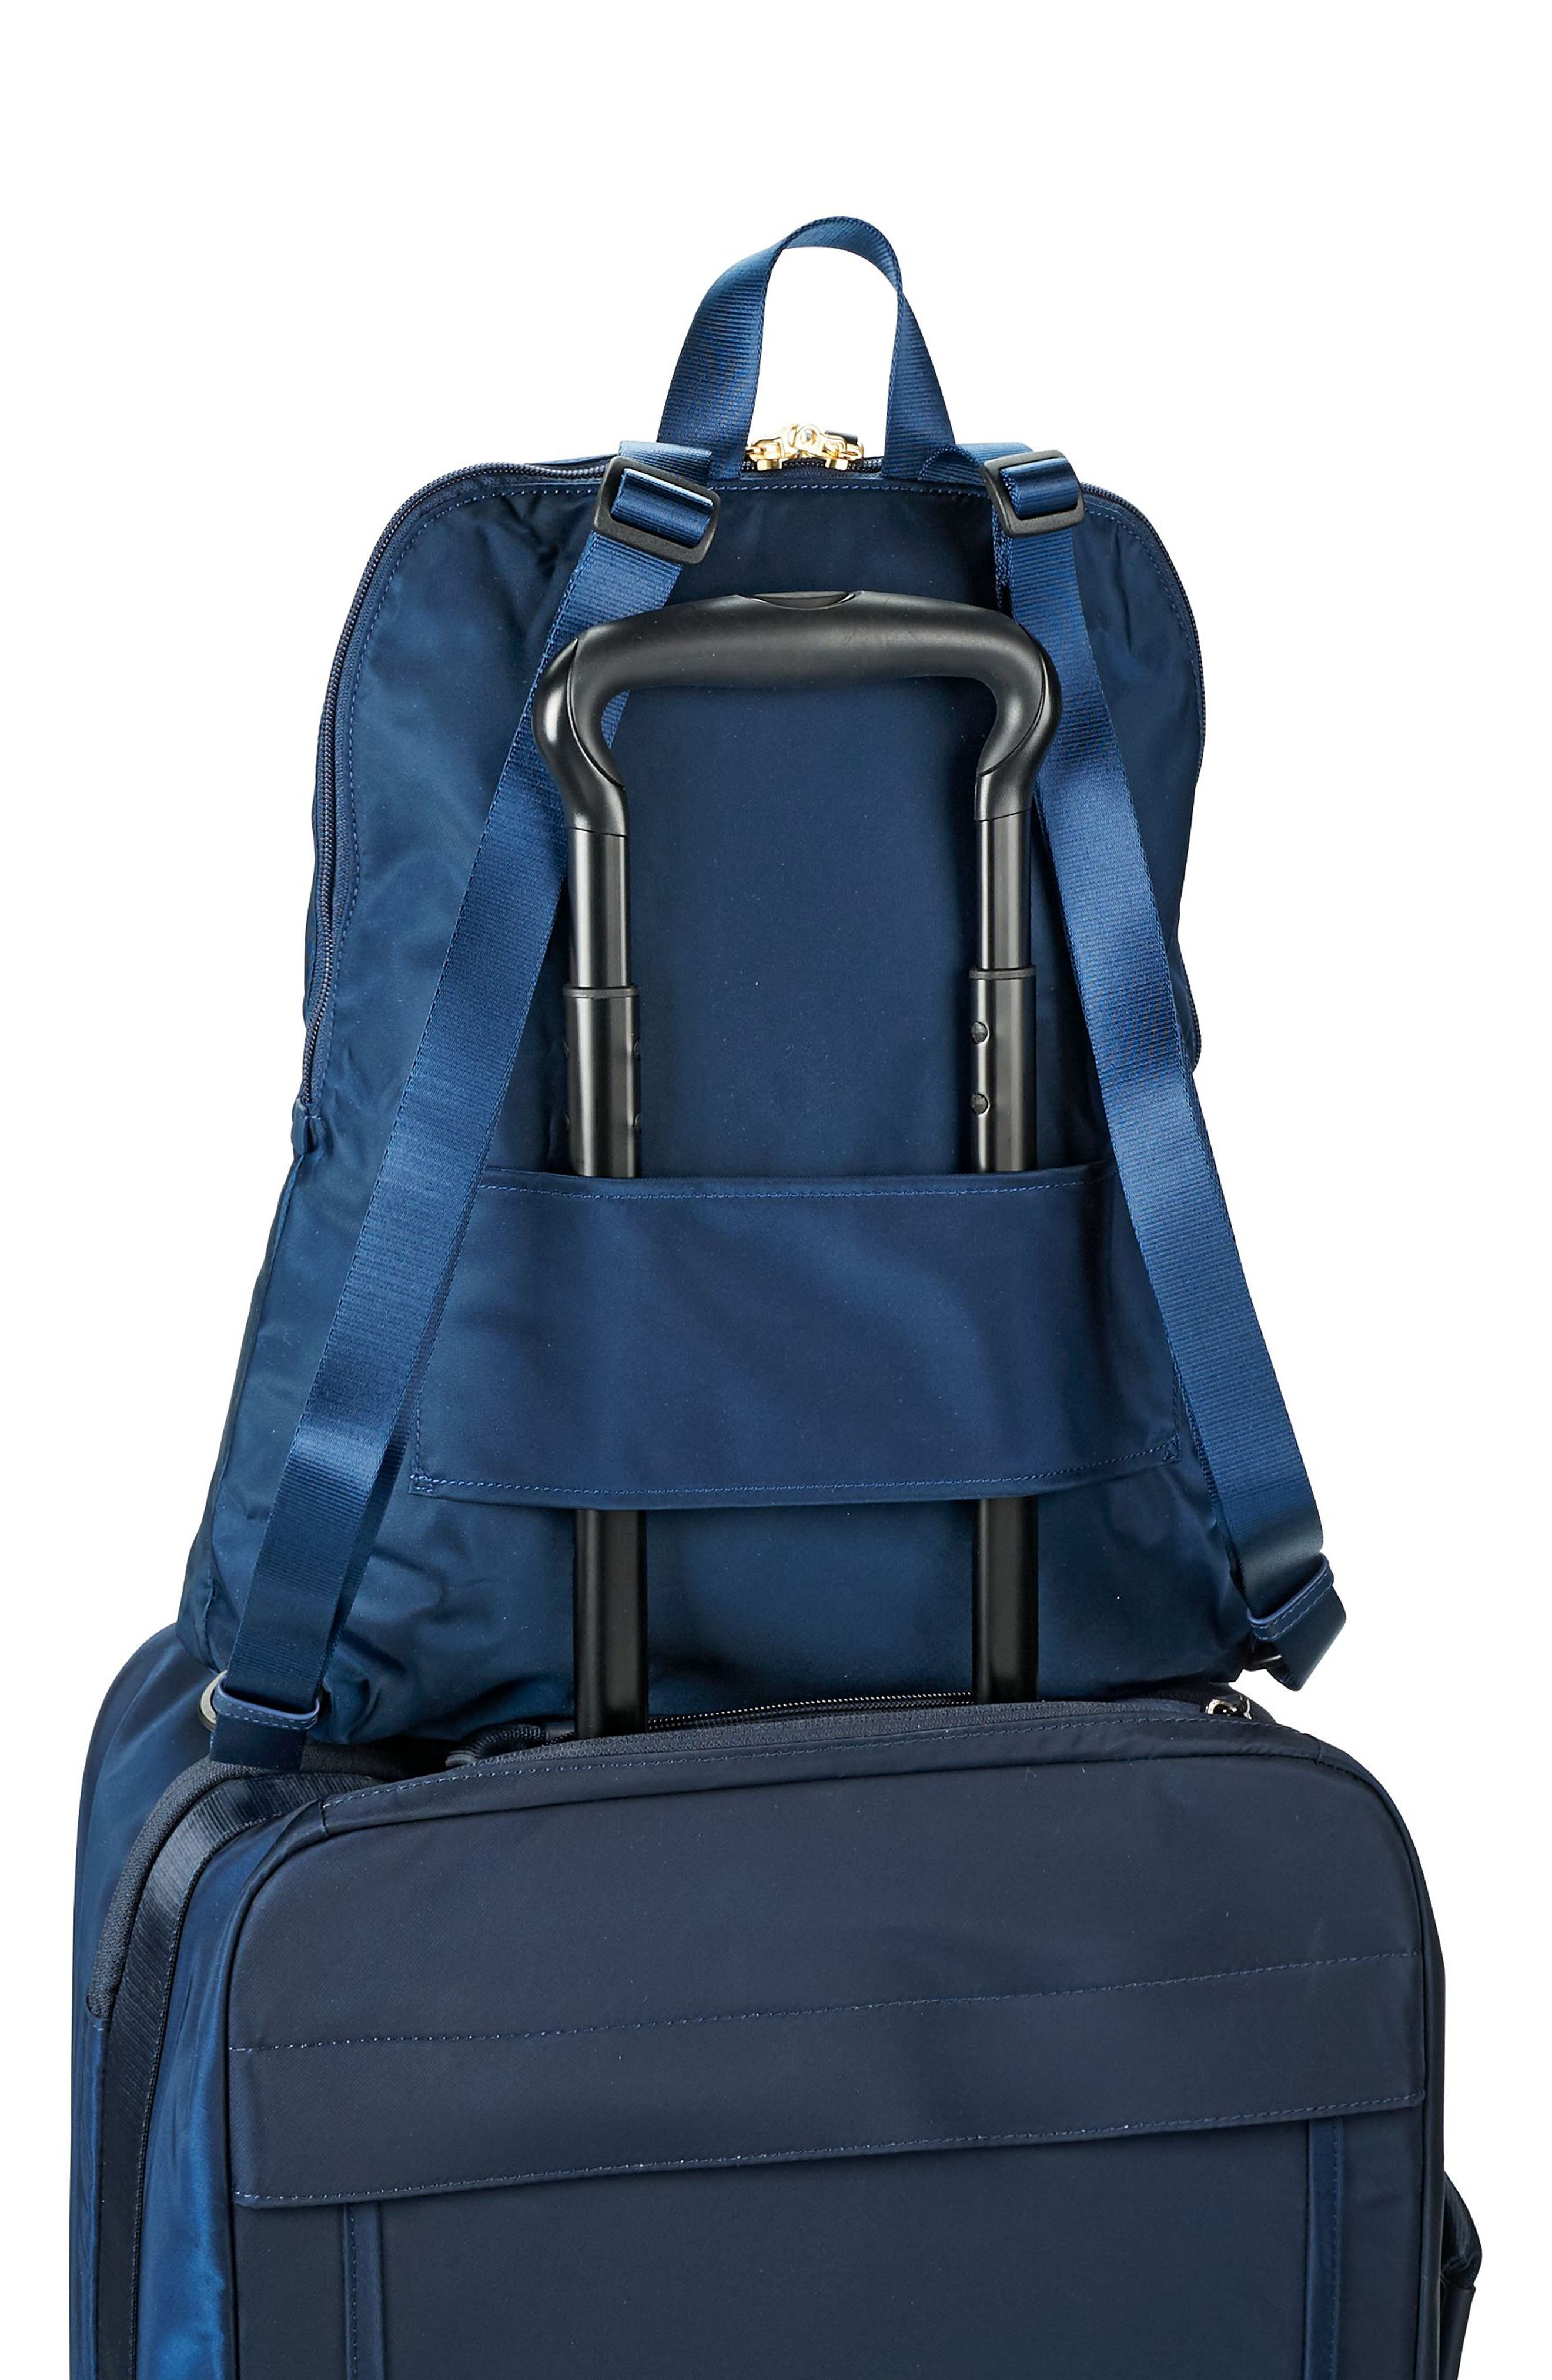 Just in Case<sup>®</sup> Back-Up Tavel Bag,                             Alternate thumbnail 6, color,                             Ocean Blue